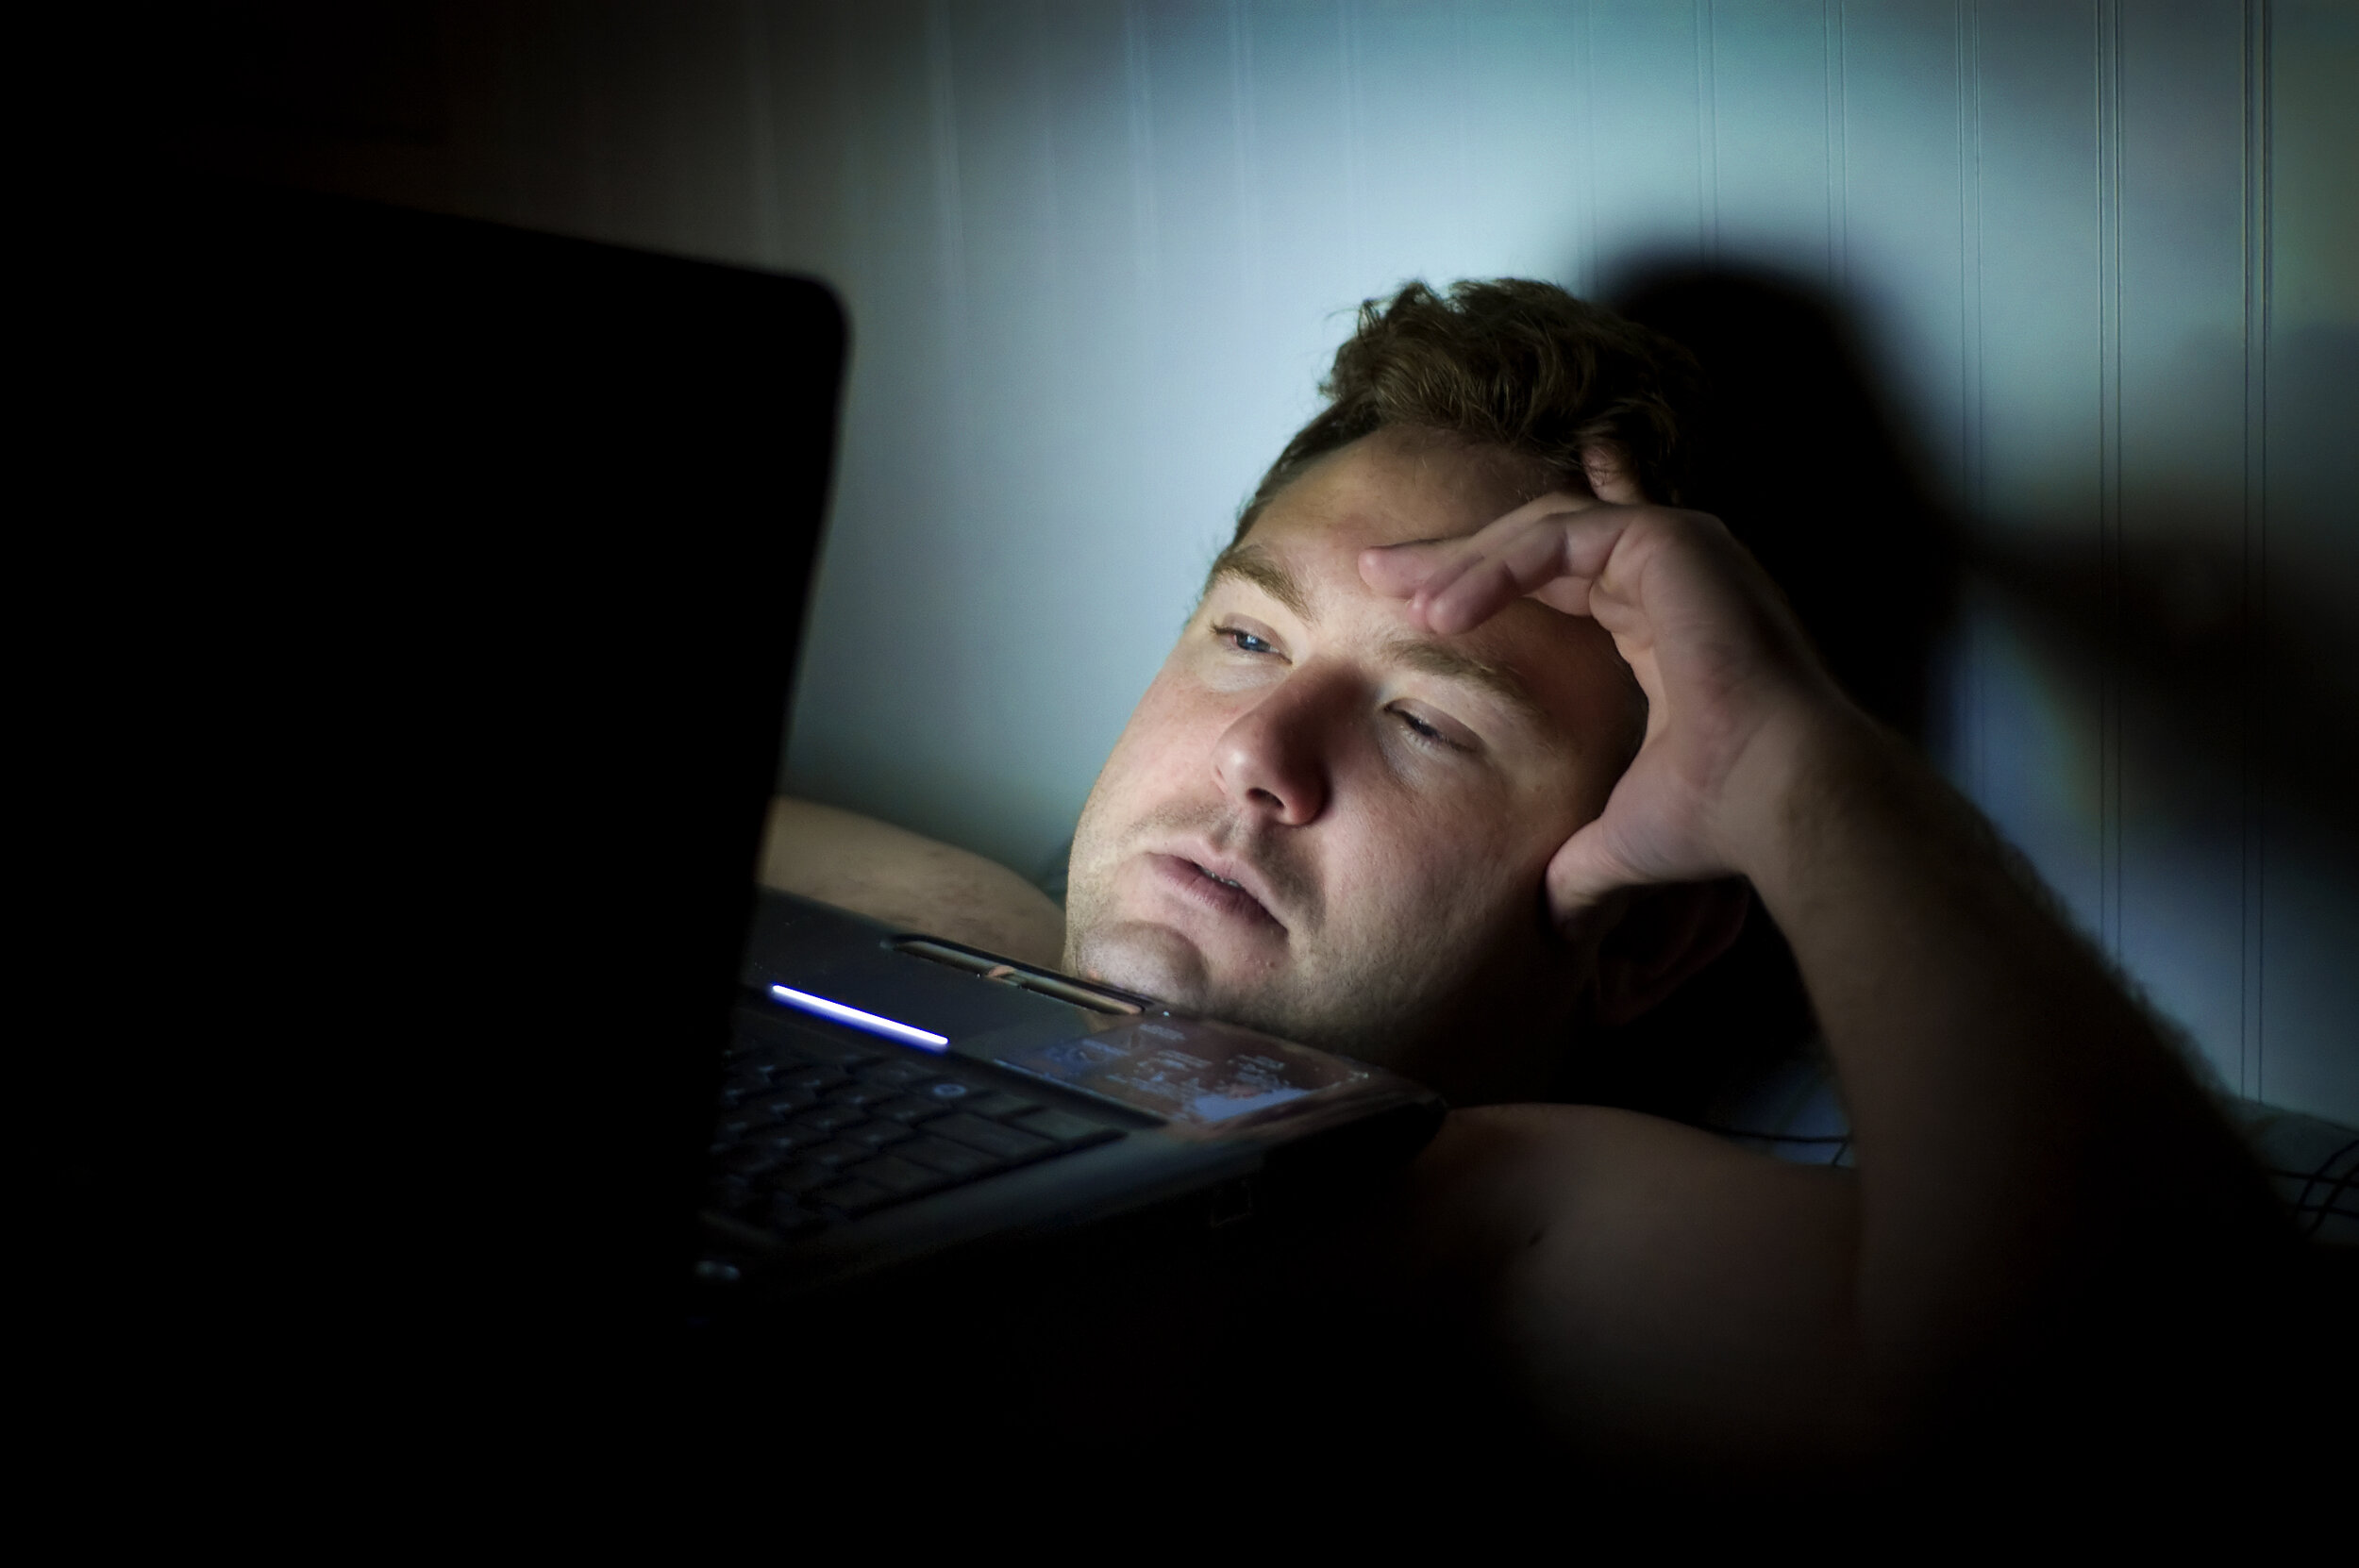 Man laying in bed in the dark with computer on his chest.